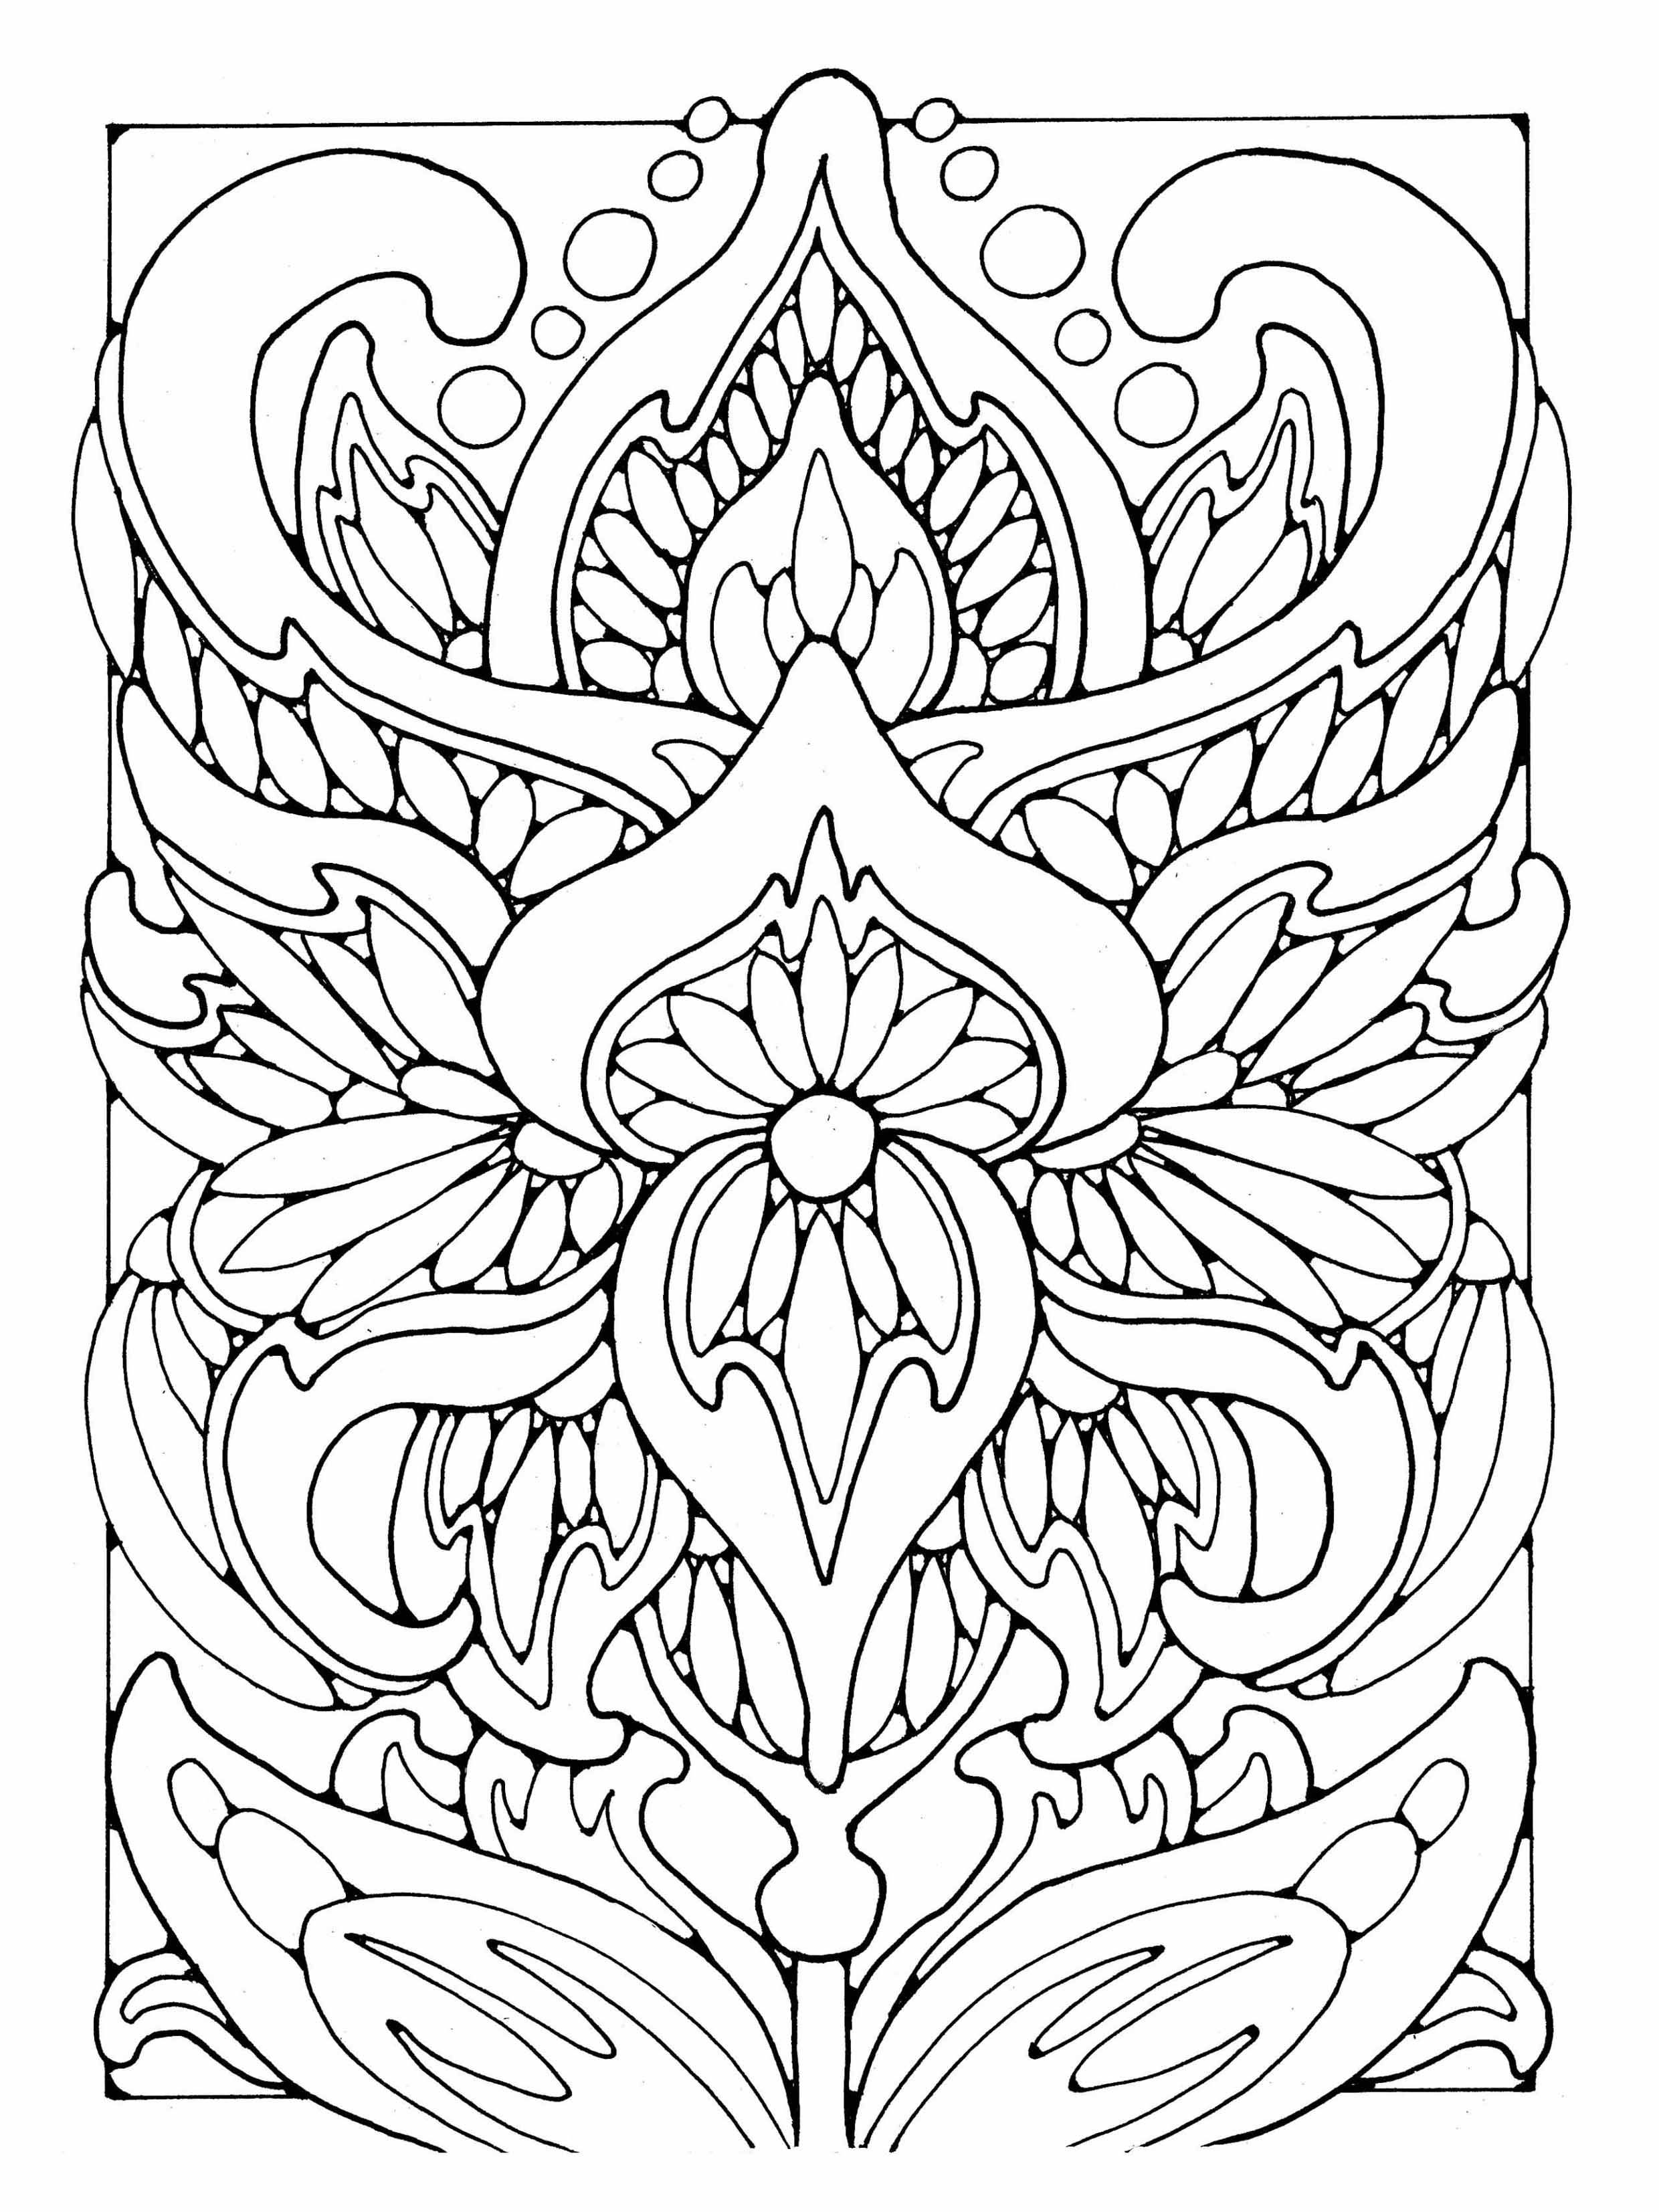 Patterns To Color In Us Letter Format Floral Coloring Pages For